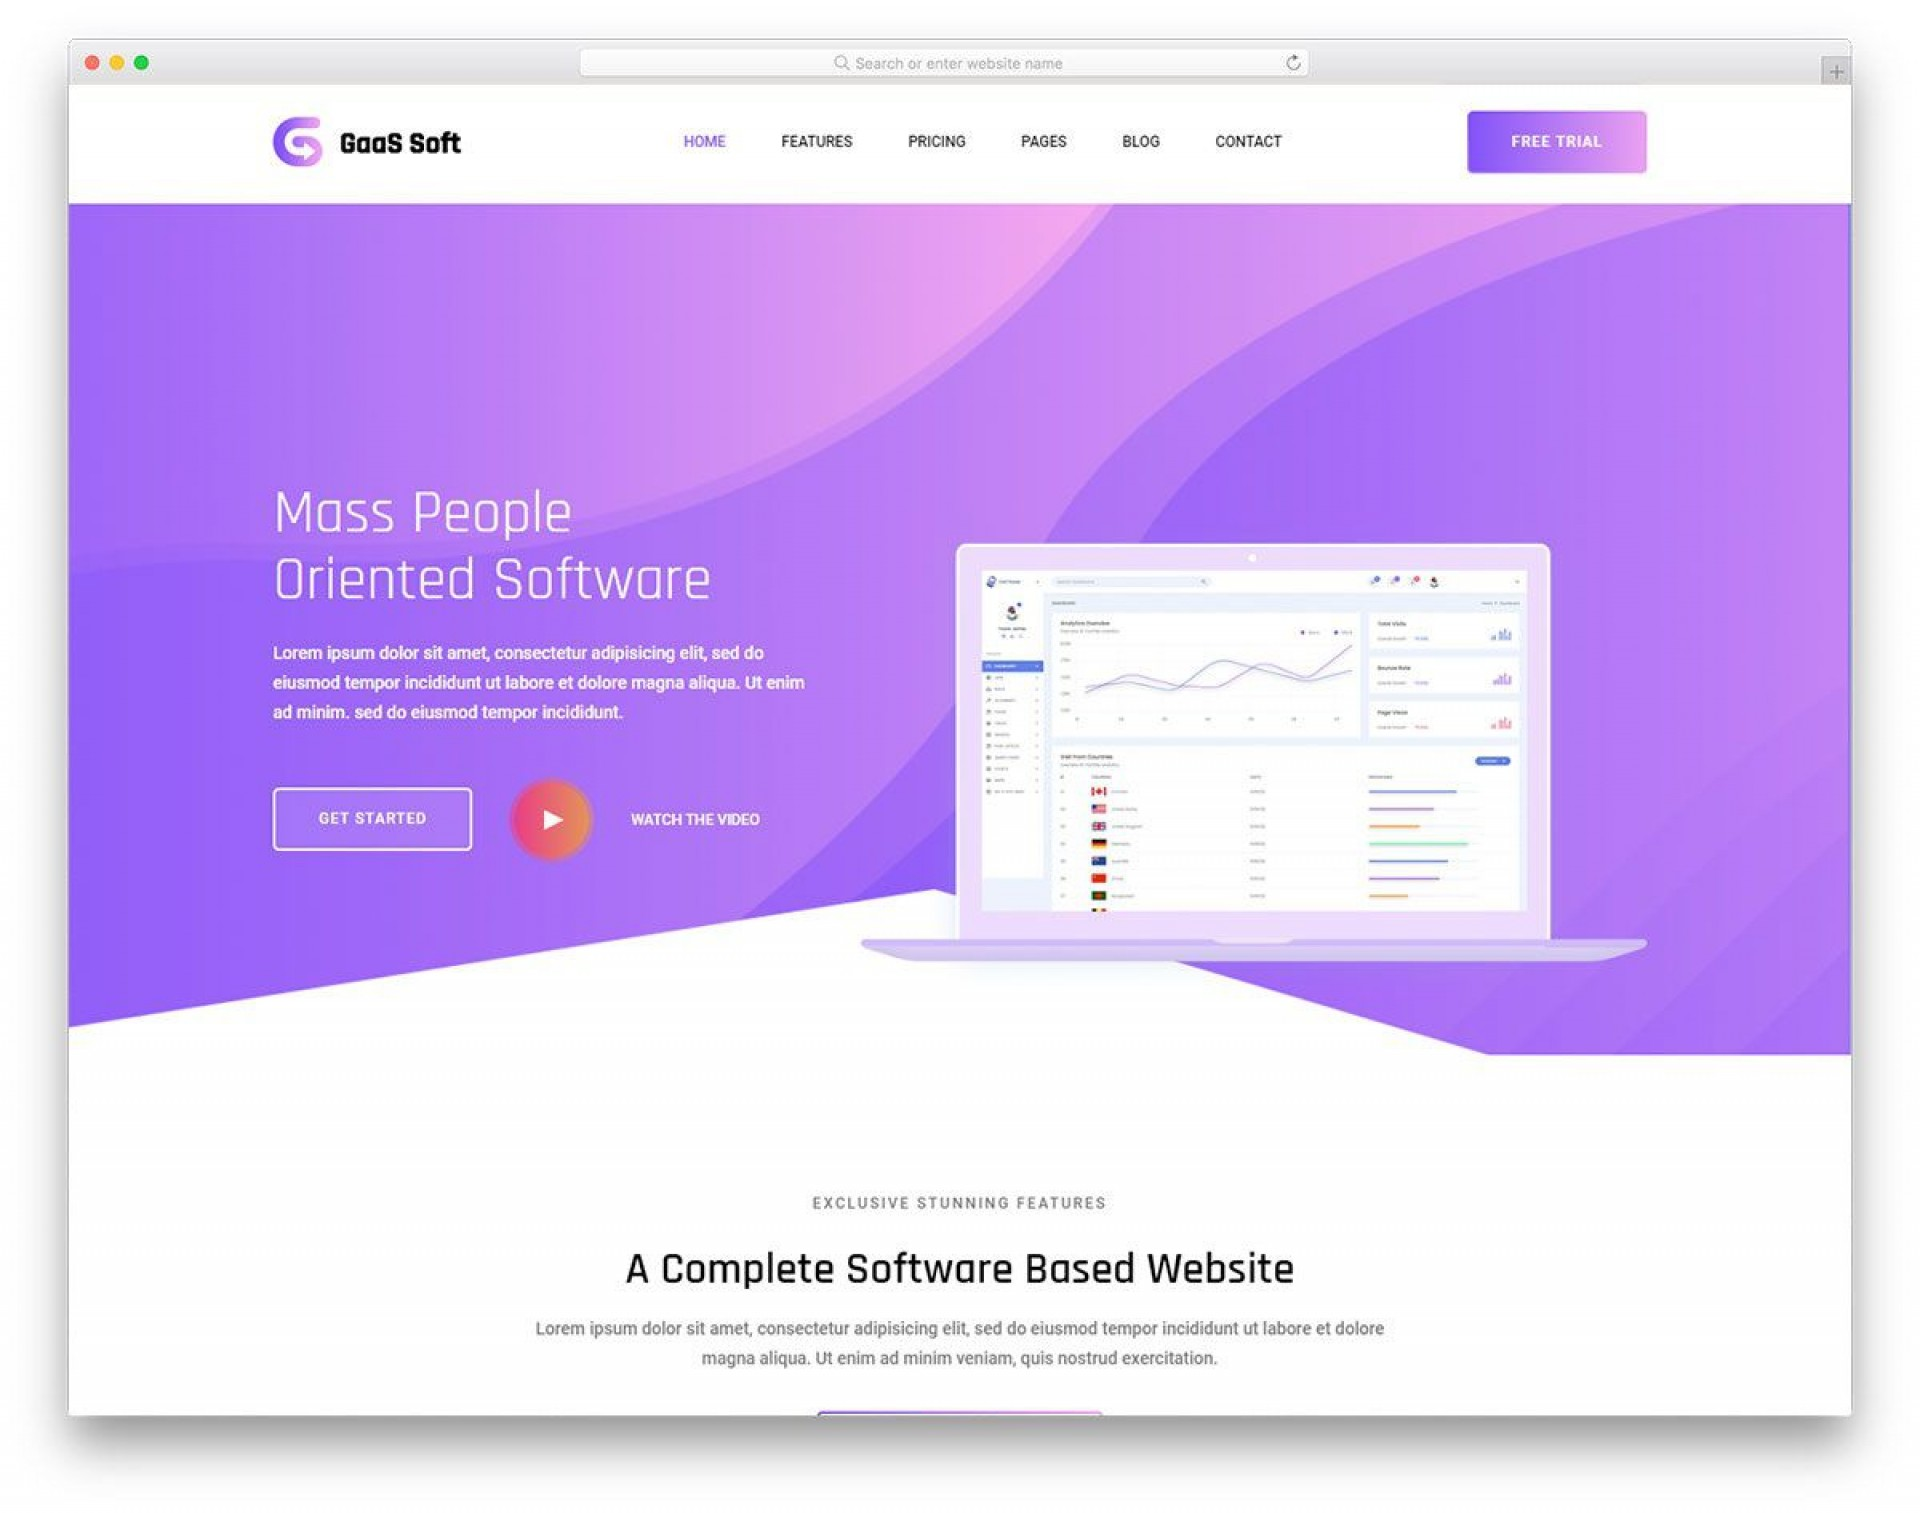 005 Fantastic Free Landing Page Template Bootstrap Idea  3 Html5 20191920